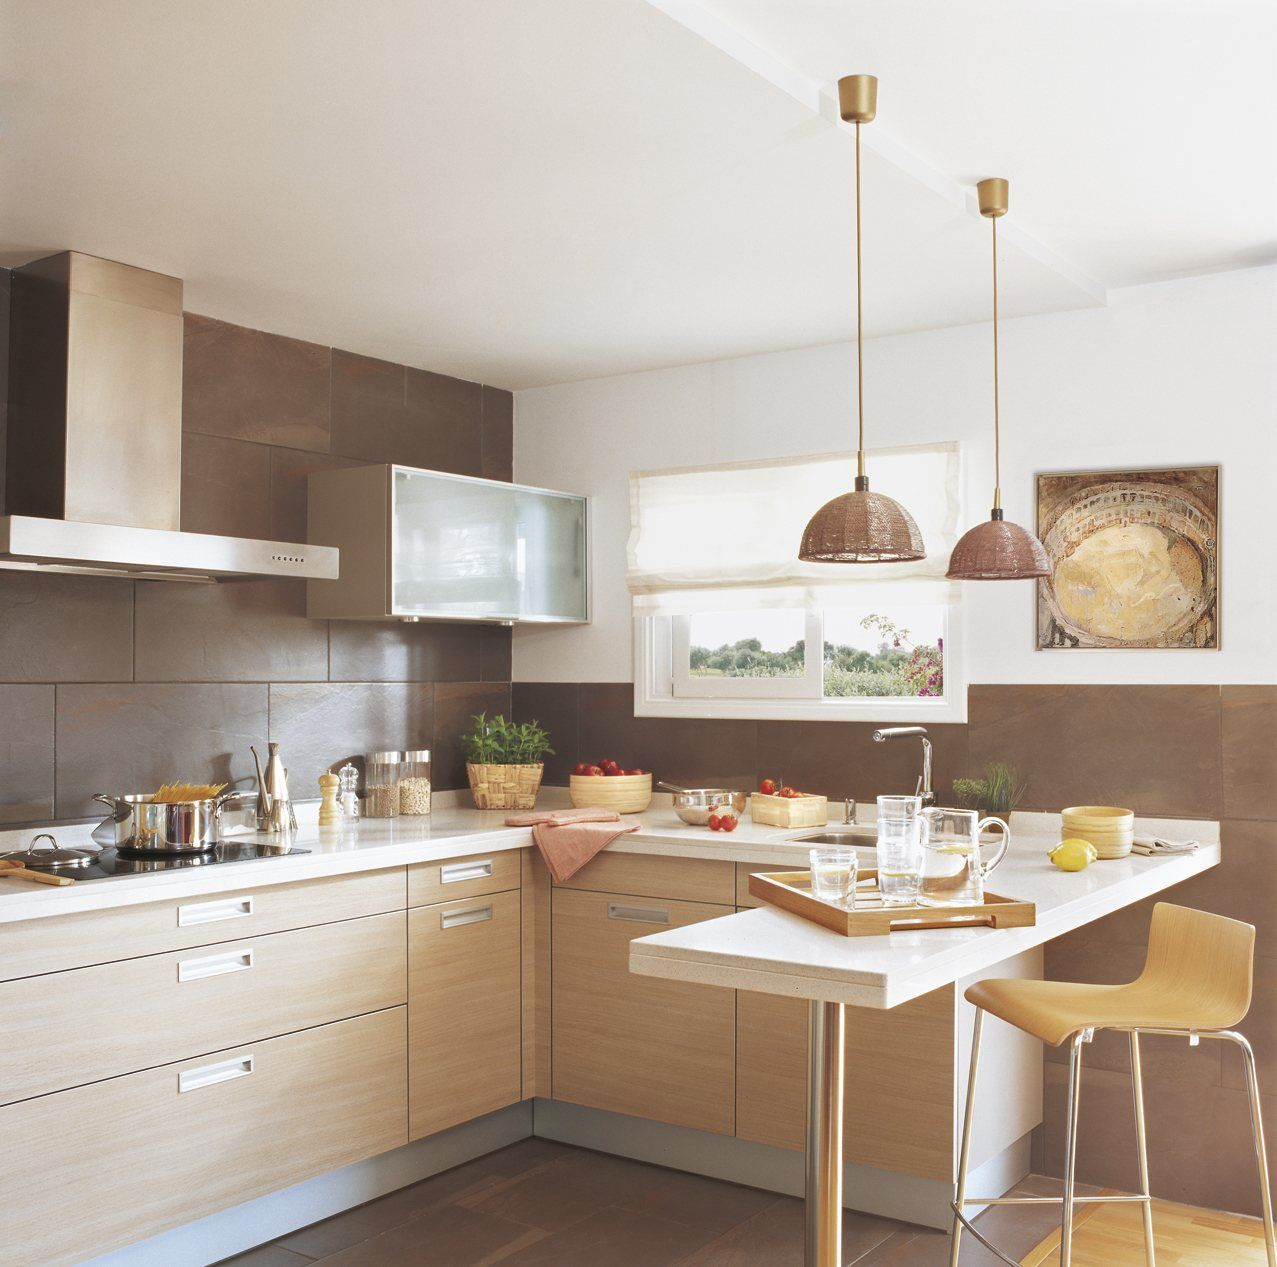 15 cocinas peque as y muy bonitas kitchens ideas para for Ideas de cocinas pequenas